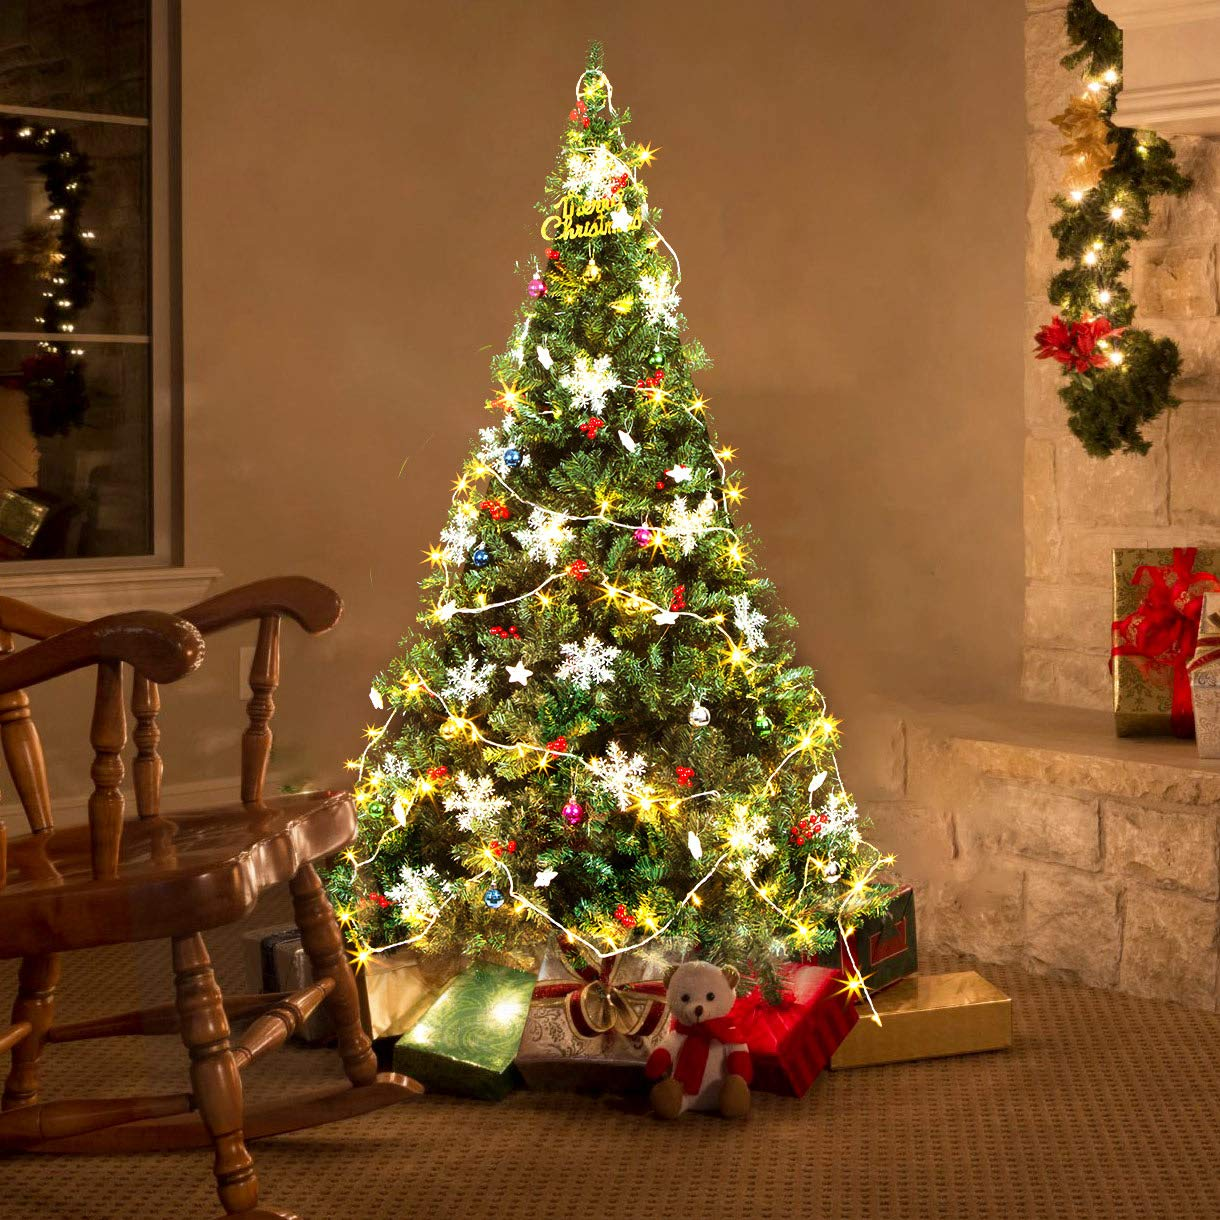 94445e2bce91 Amazon.com  MeiLiMiYu Christmas Tree Green National Tree Beautiful Christmas  Trees Indoor and Outdoor Home Decoration  Home   Kitchen